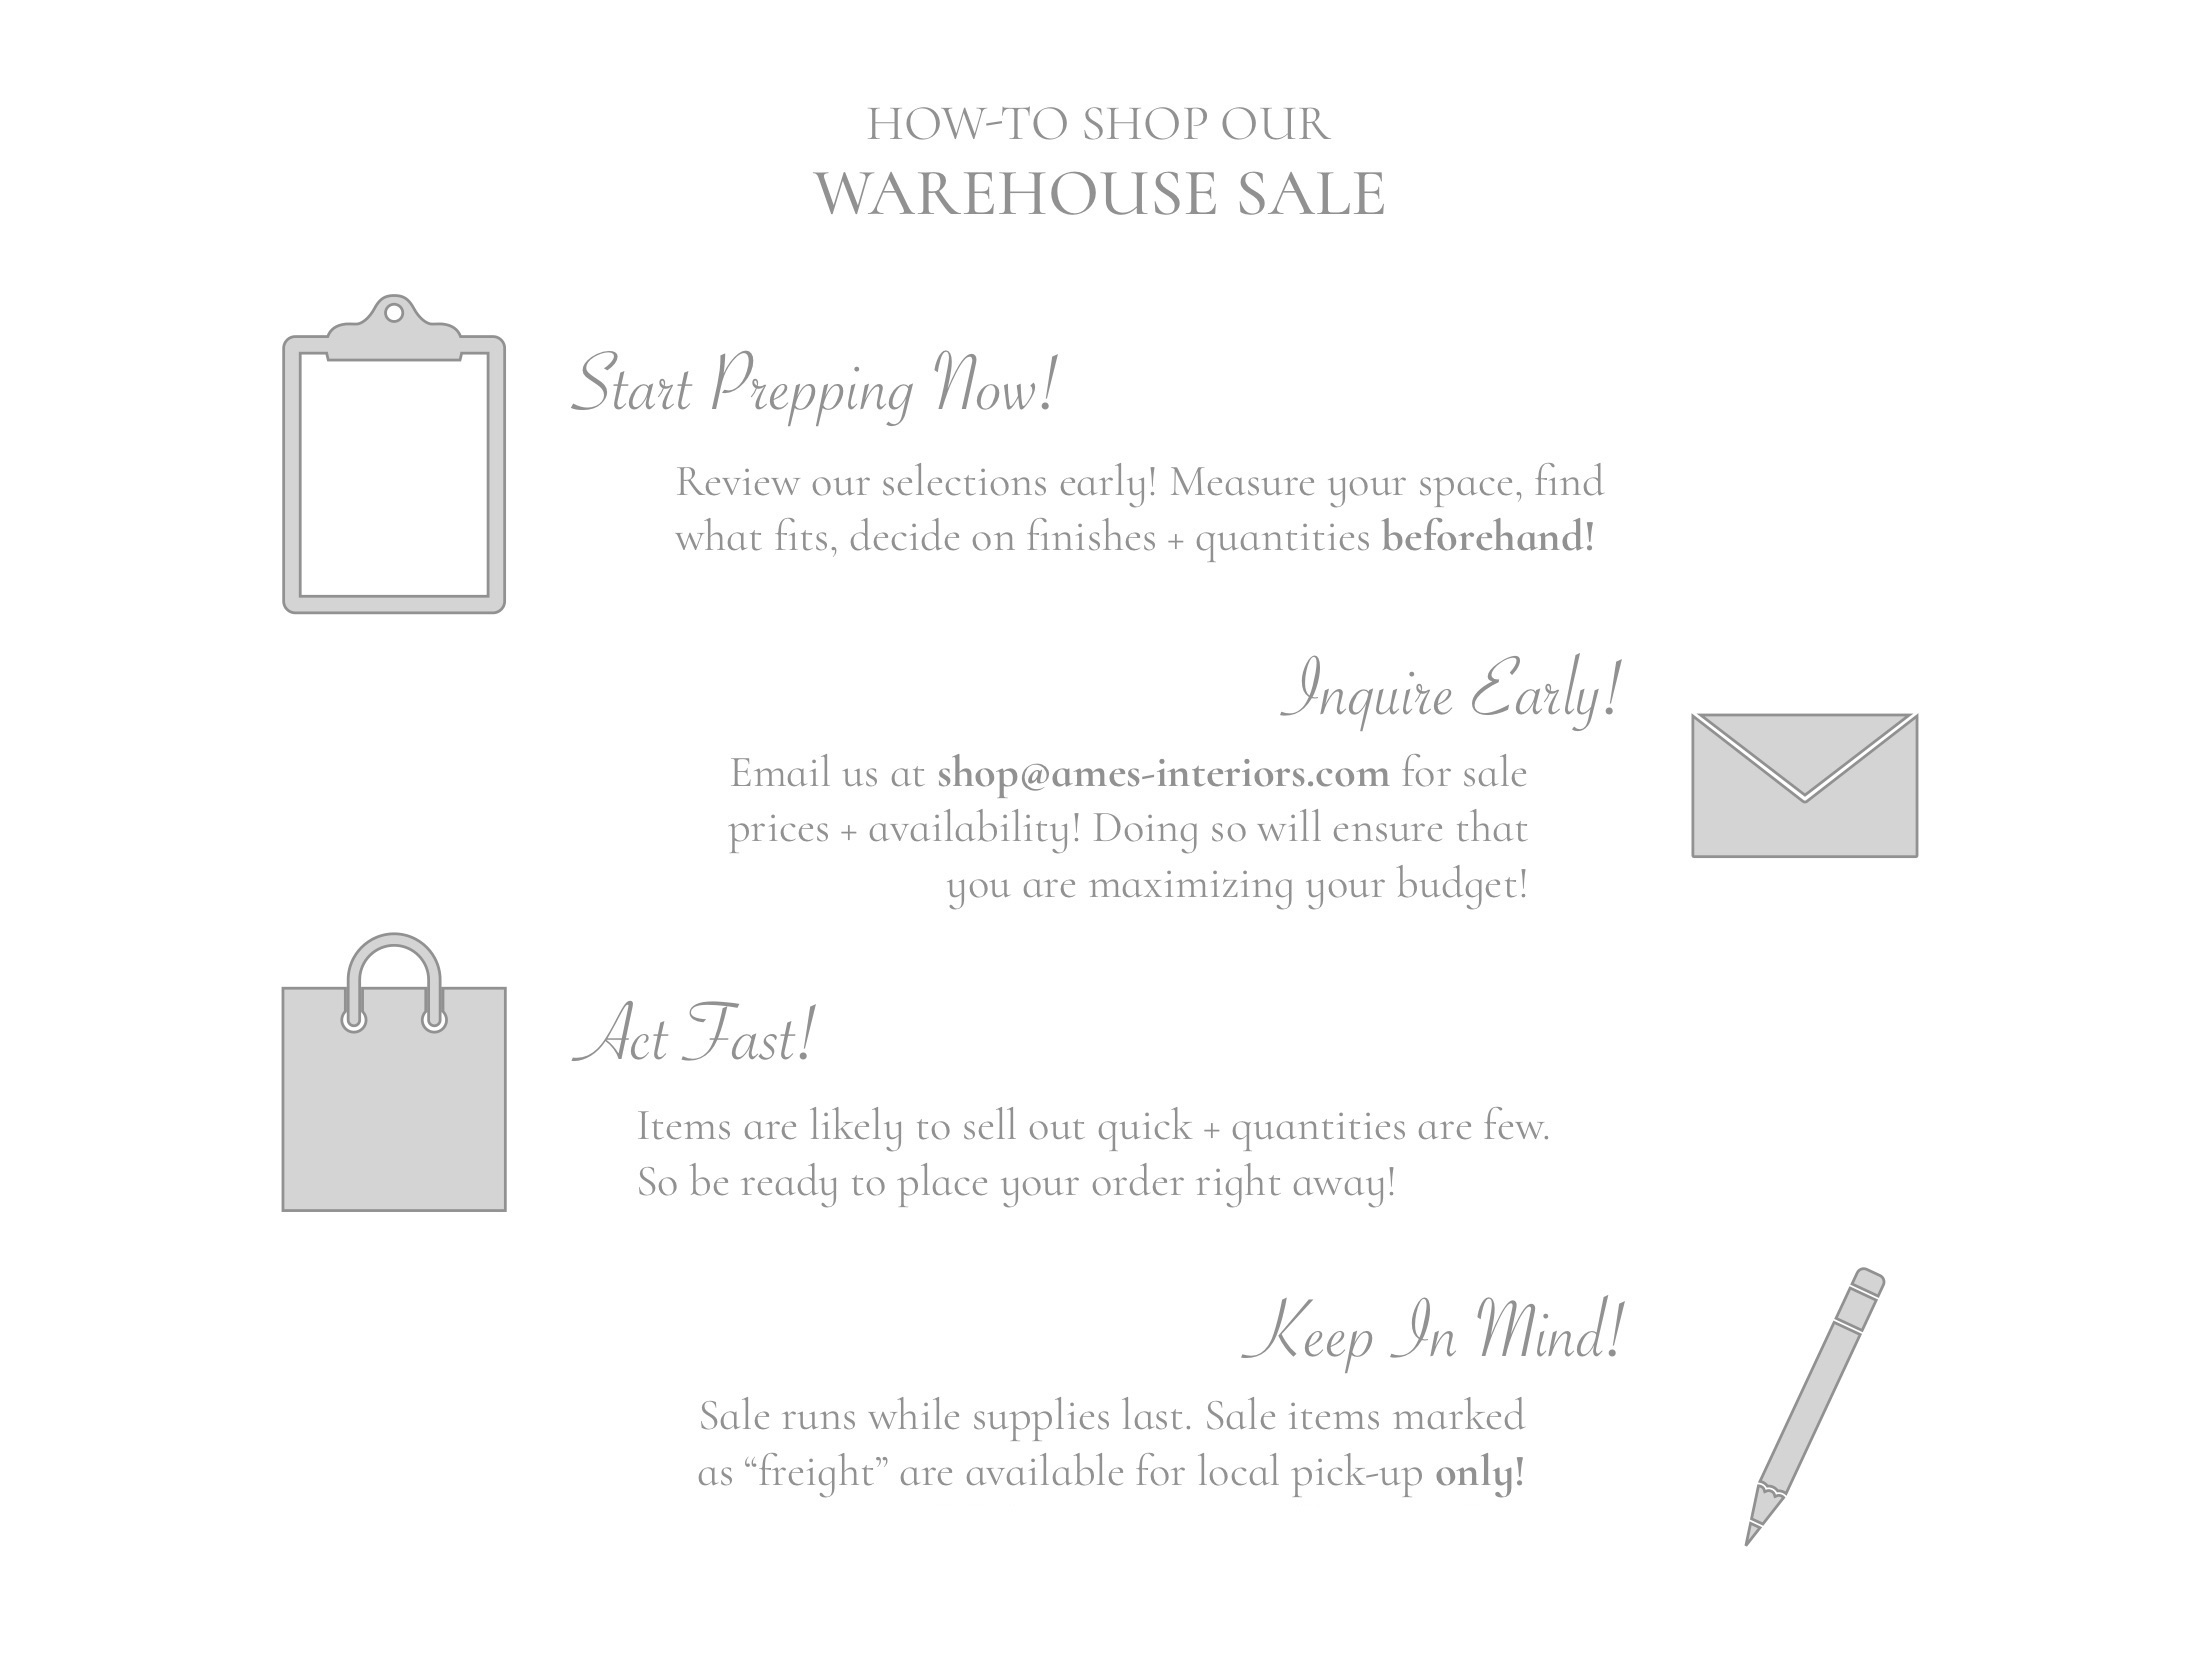 How-To Shop | Online Warehouse Sale.jpg